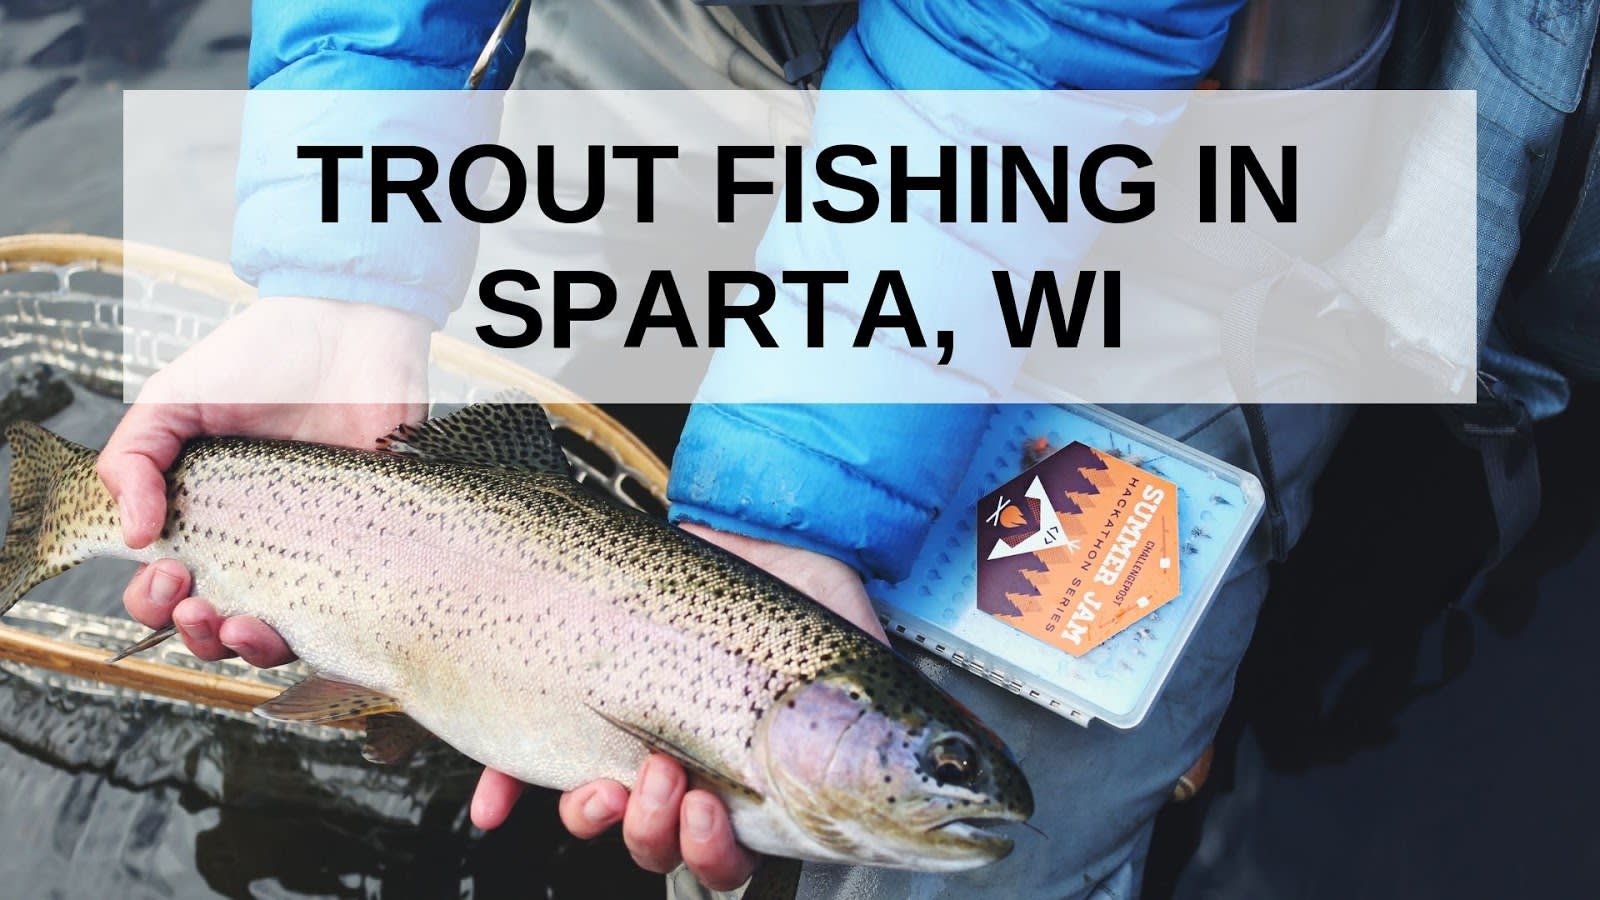 Trout Fishing in Sparta, WI